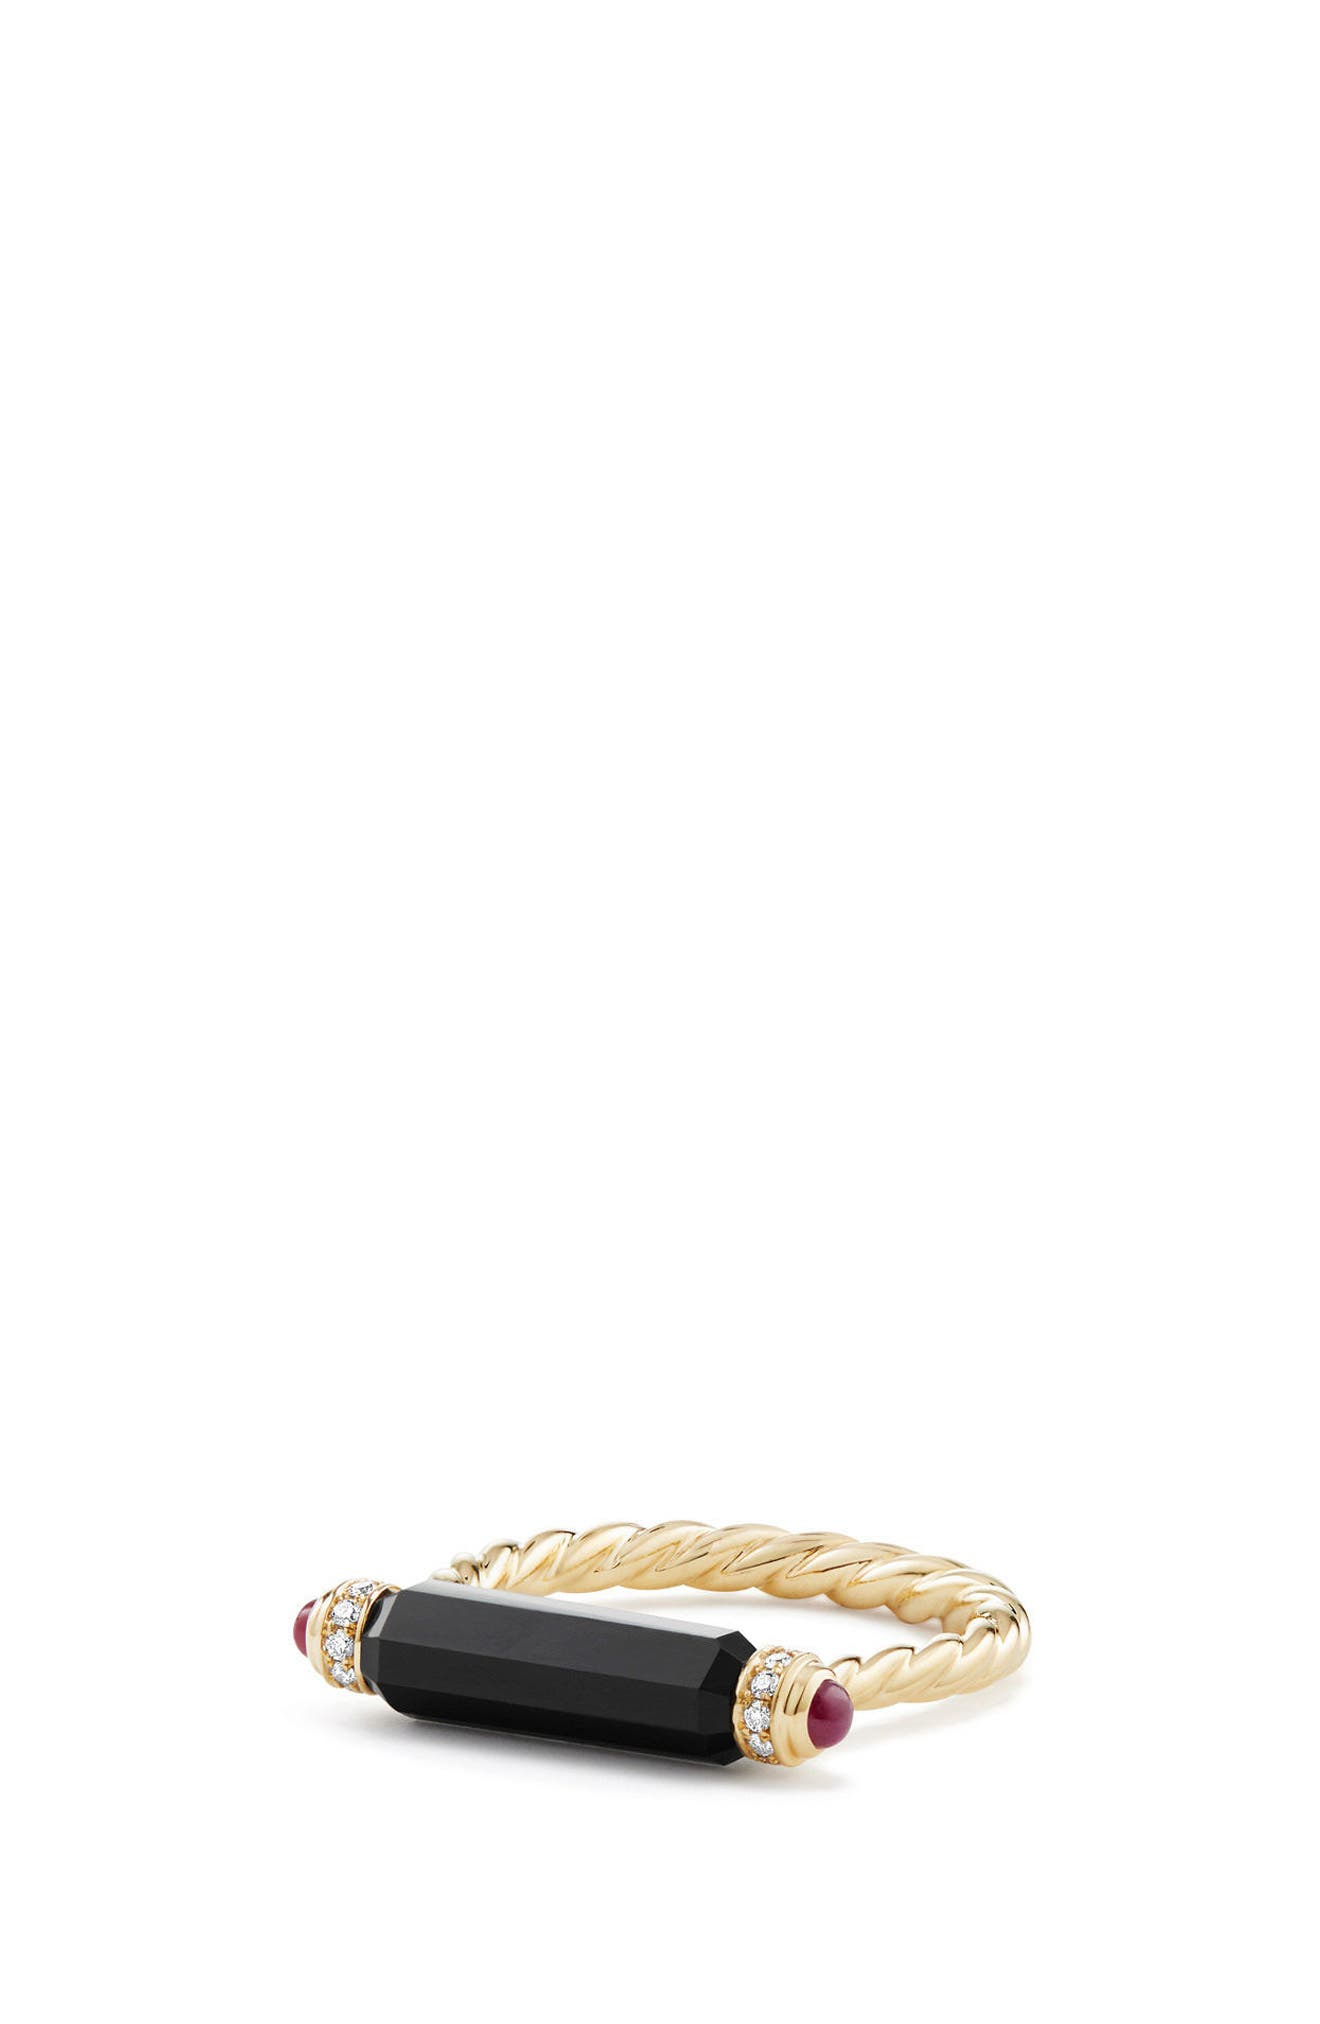 Barrels Ring with Diamonds in 18K Gold,                         Main,                         color, BLACK ONYX